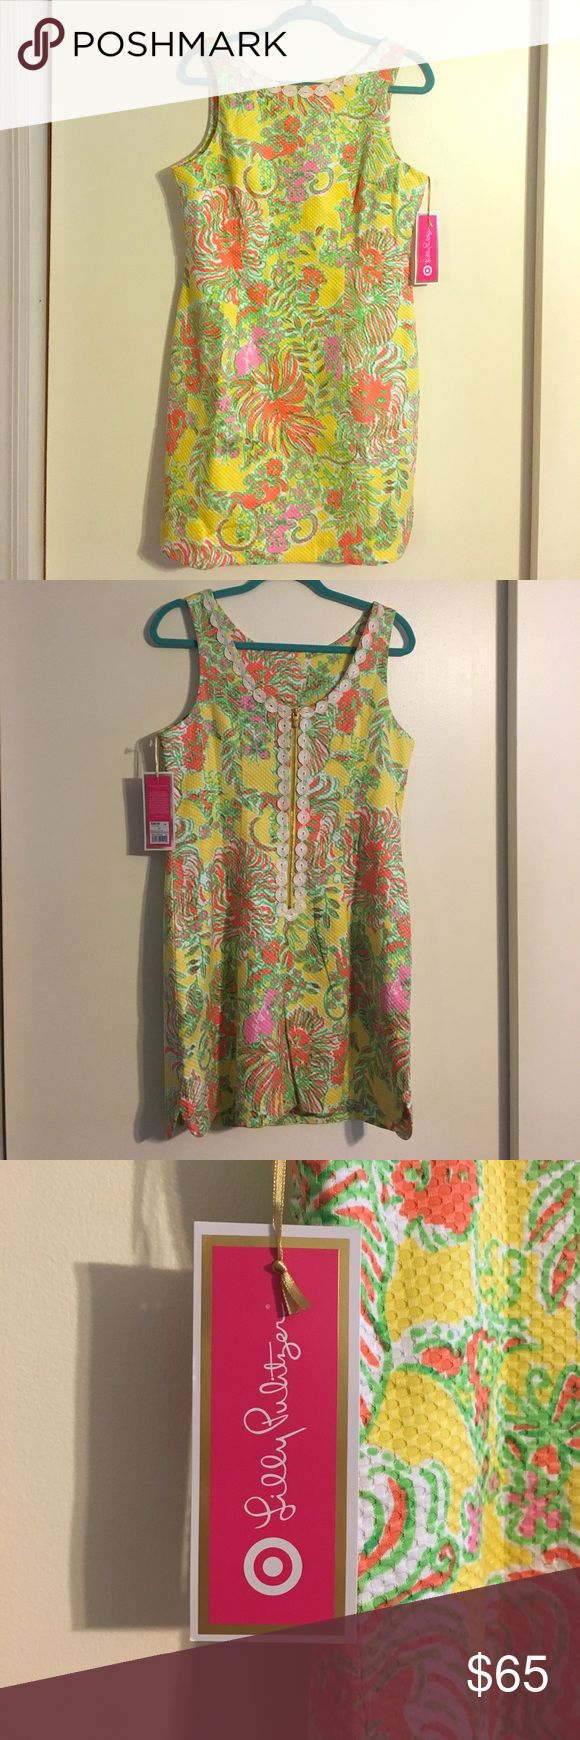 Lilly Pulitzer for Target shift dress. Brand new, never worn. Size 12. Lilly Pulitzer for Target shift dress. Lilly Pulitzer for Target Dresses Mini